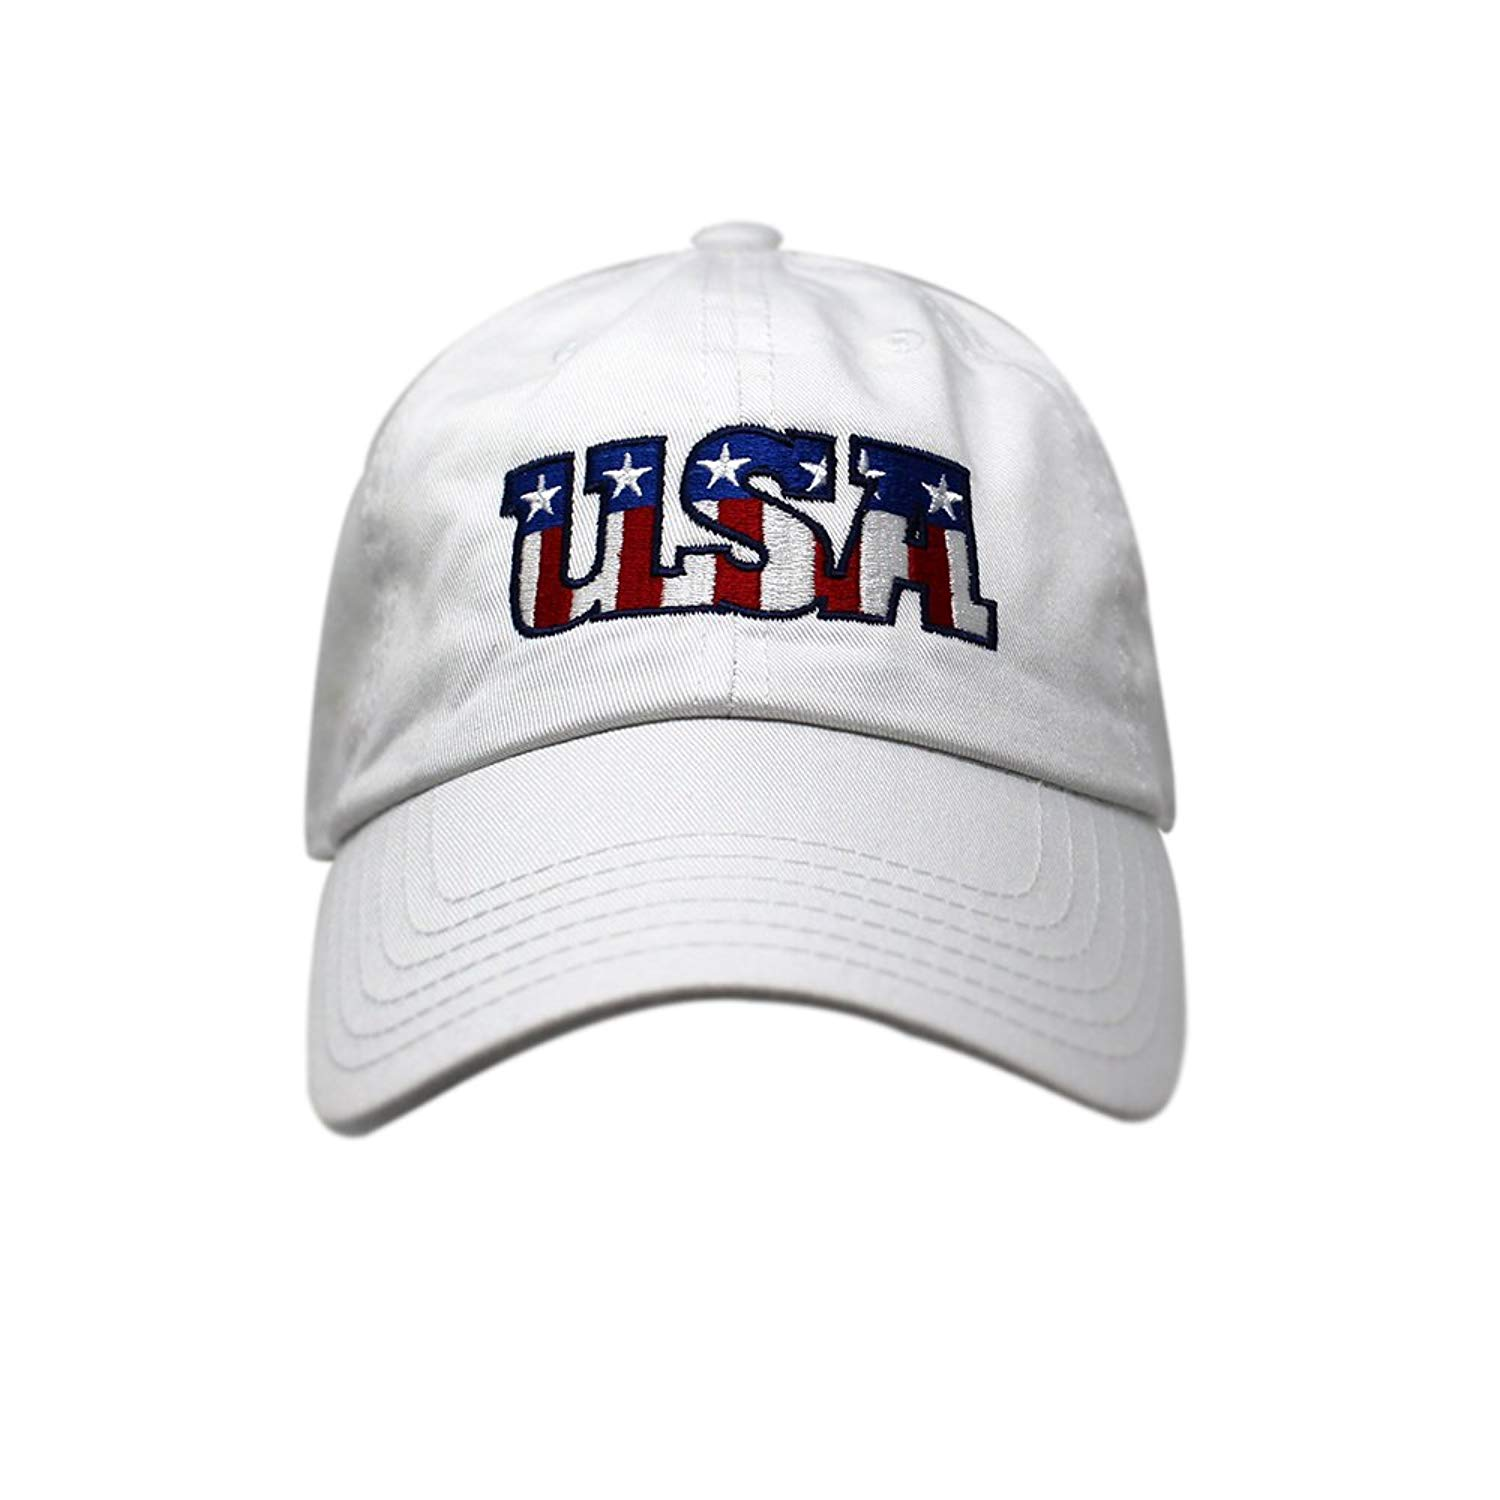 c7ae0bc1 Get Quotations · USA Dad Hat Cotton Baseball Cap Polo Style Low Profile  United States Embroidered